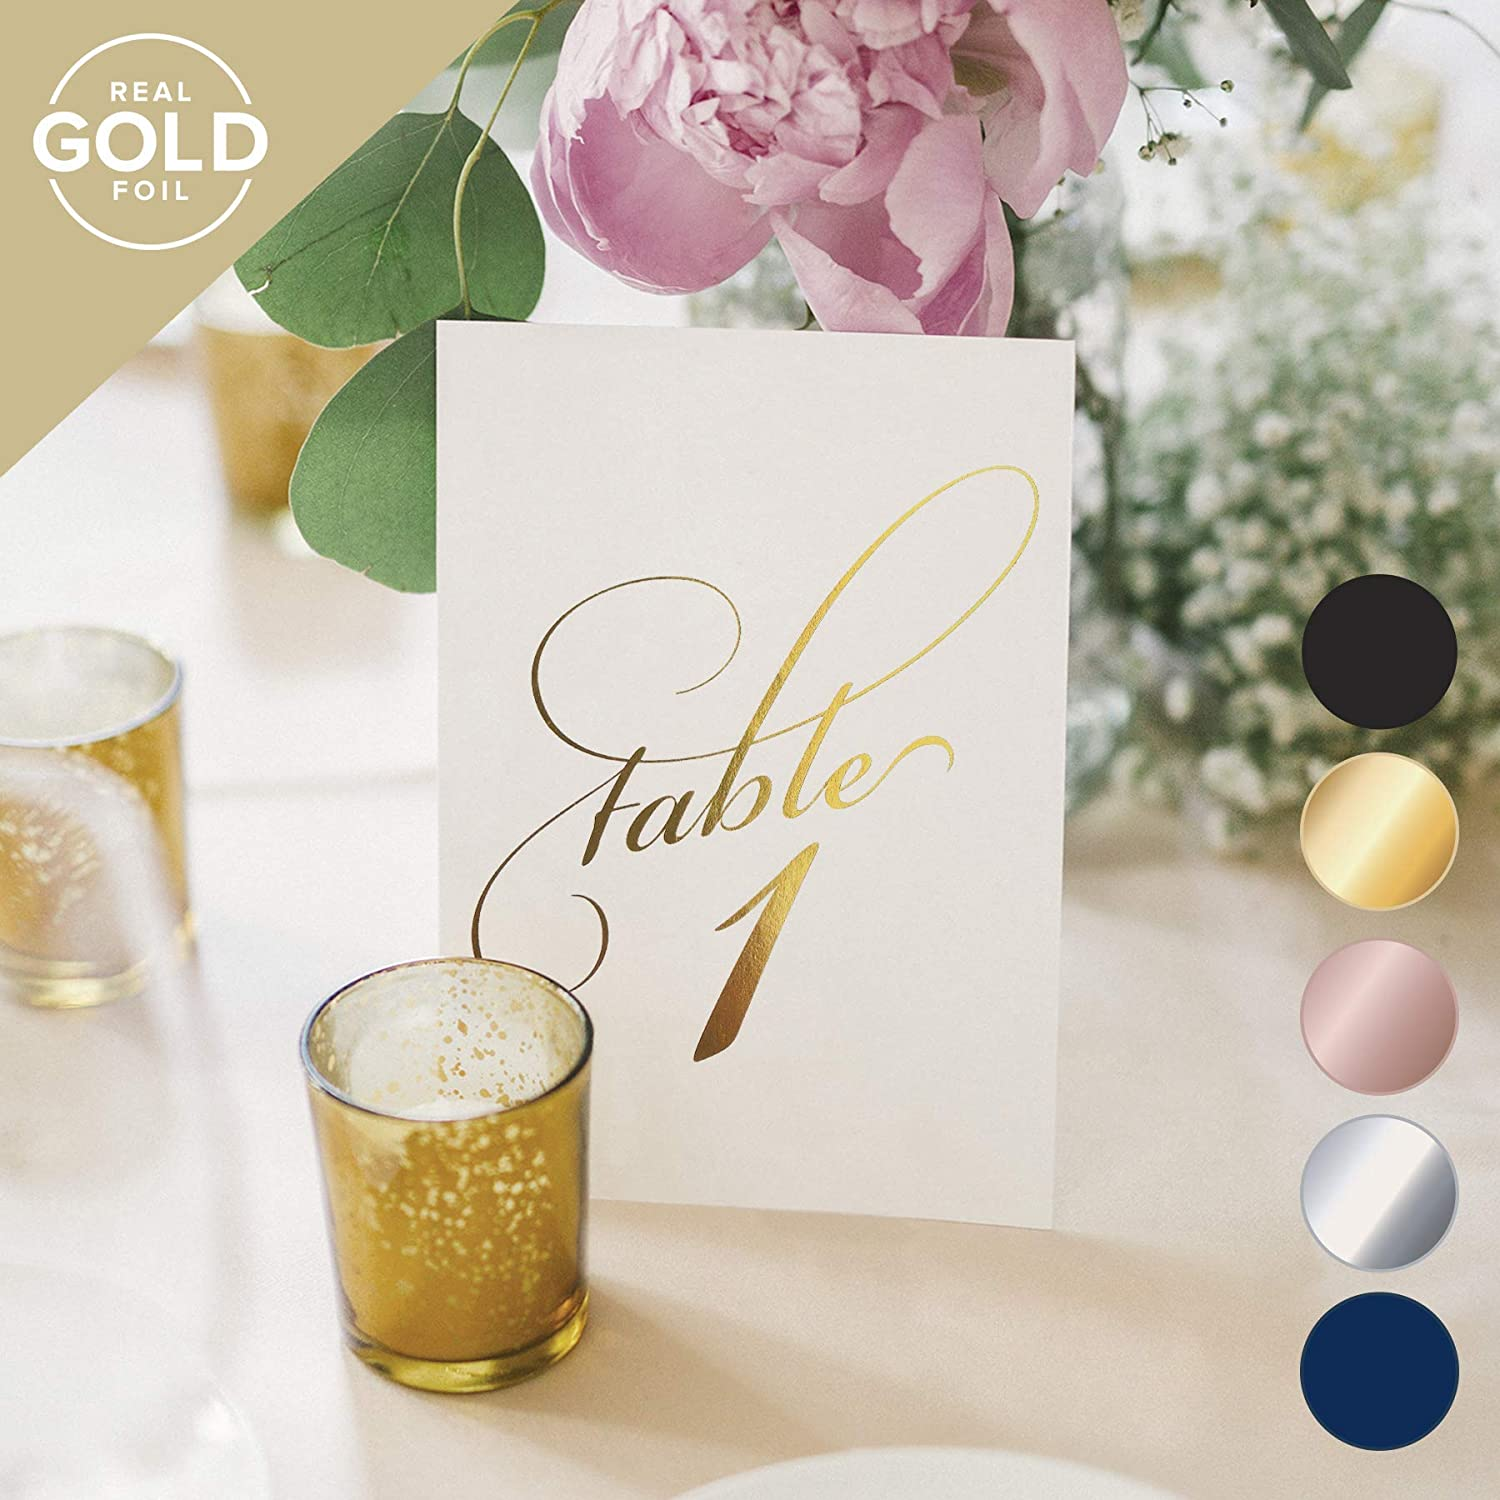 Gold Foil Table Numbers - Paper